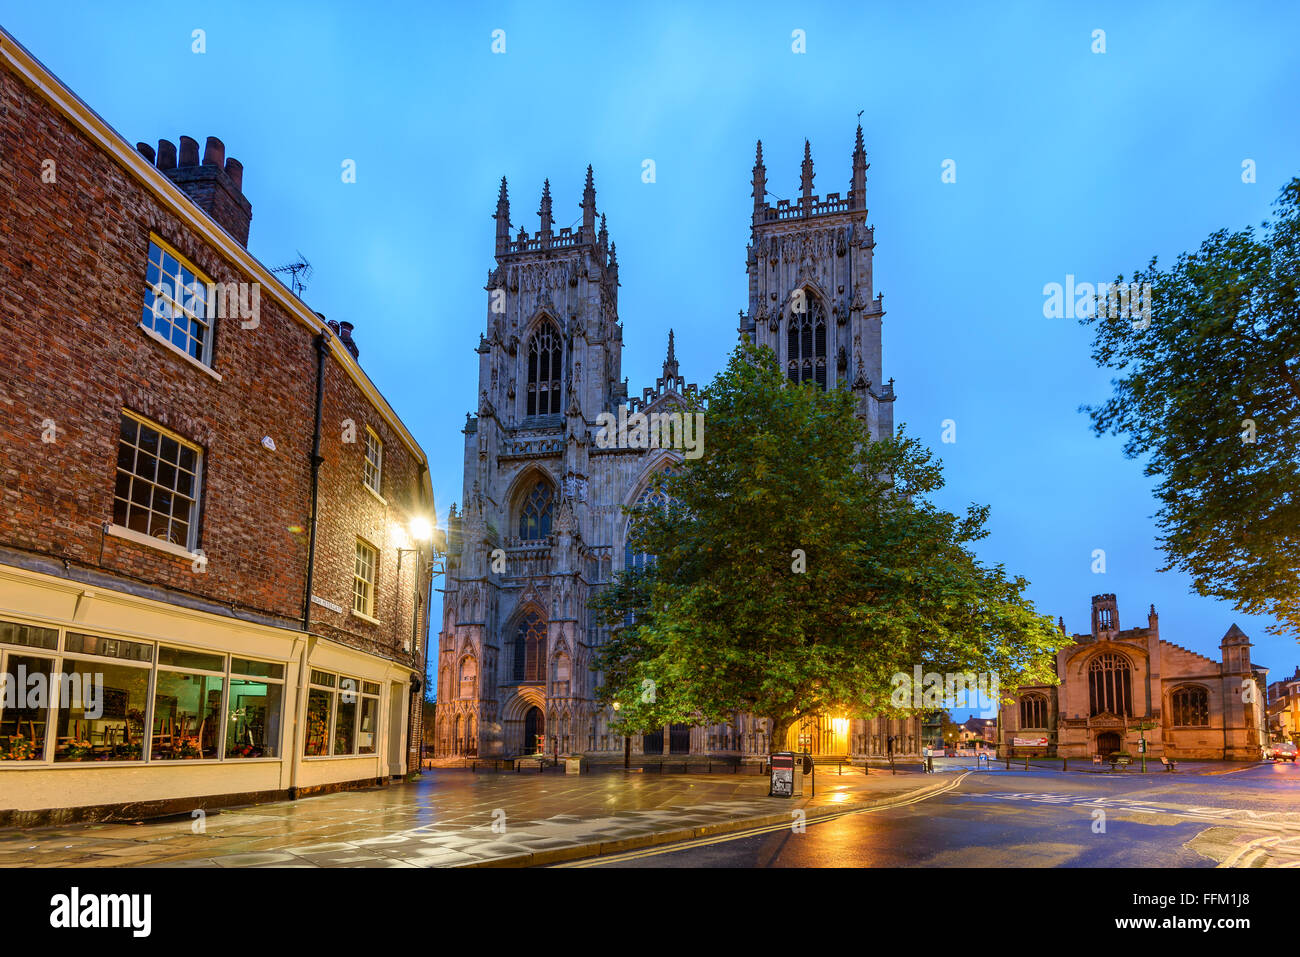 York Minster, is the cathedral of York, England, and is one of the largest of its kind in Northern Europe - Stock Image